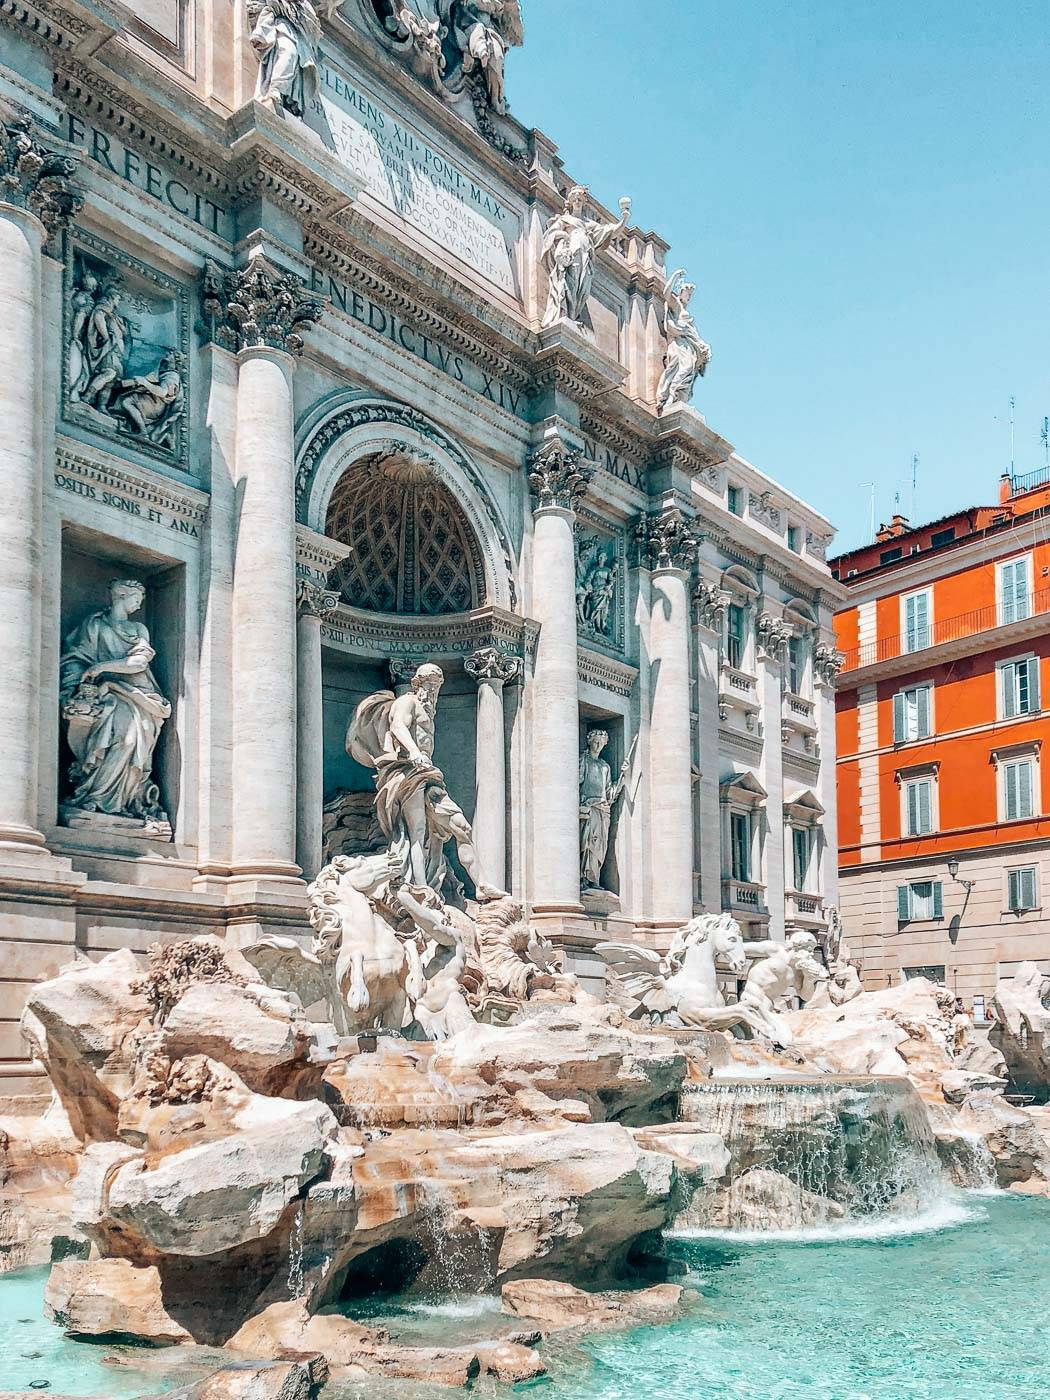 Roaming the streets will never get old, but there are a million lesser-known sights in town: our 25 hidden gems in Rome